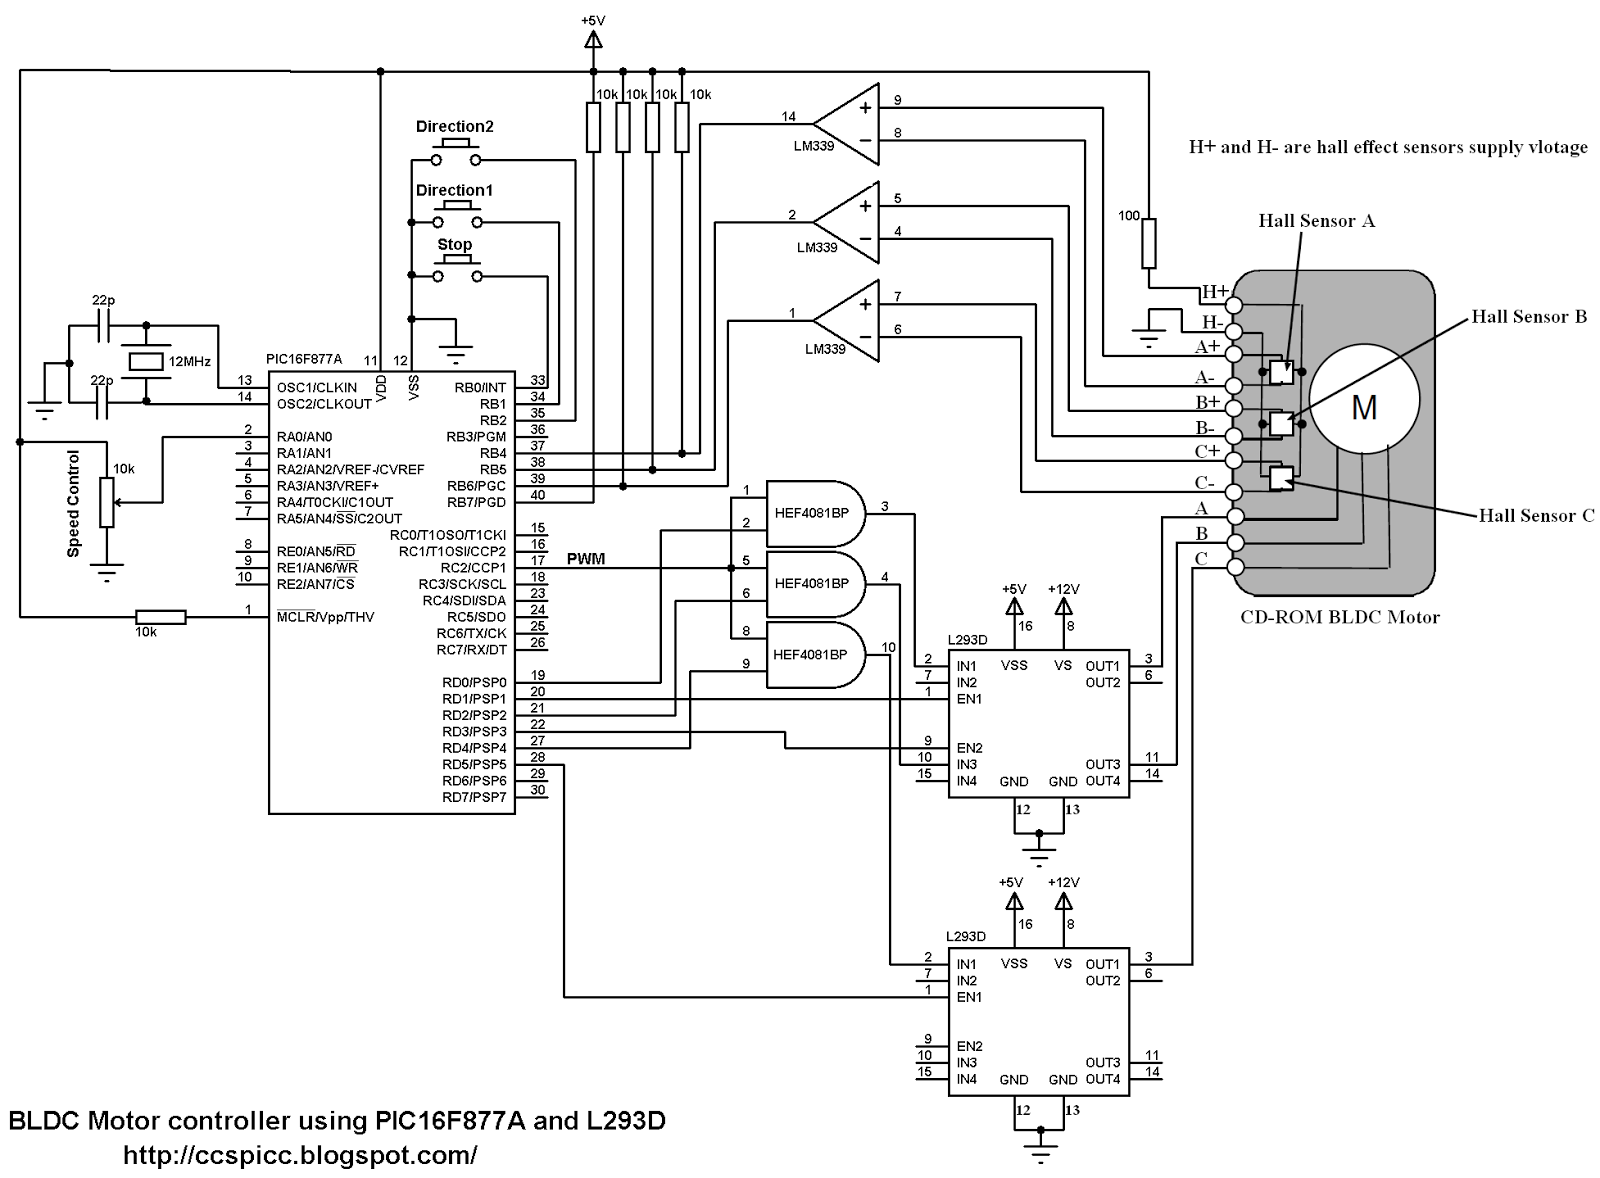 Bldc motor control using pic16f877a and l293d for Schematic diagram of dc motor